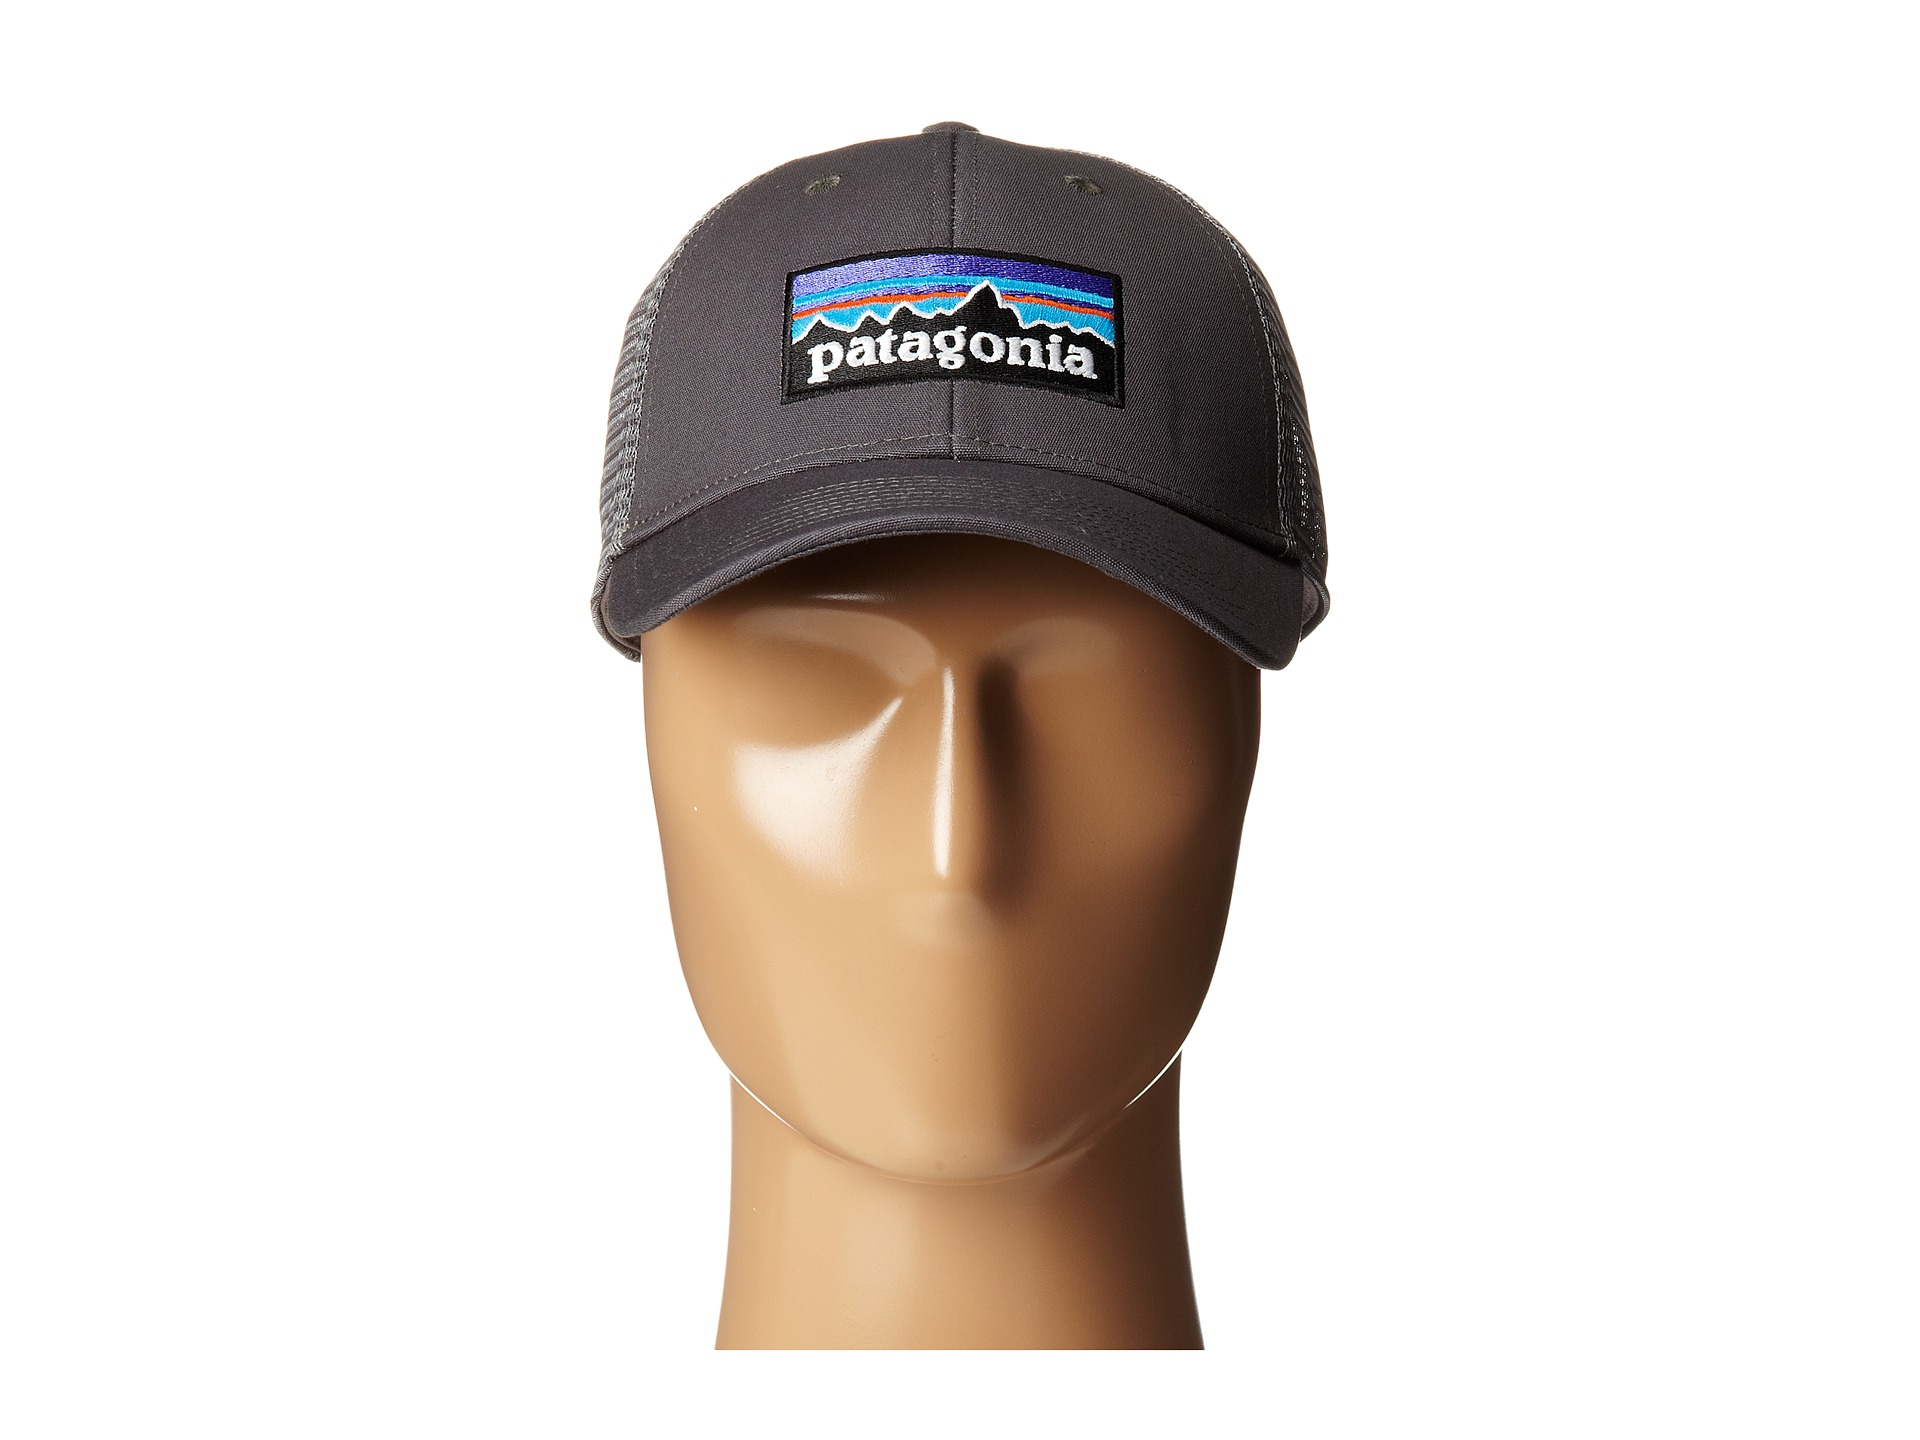 d0a85e4671992 Patagonia P6 Lopro Trucker Hat in Gray for Men - Lyst